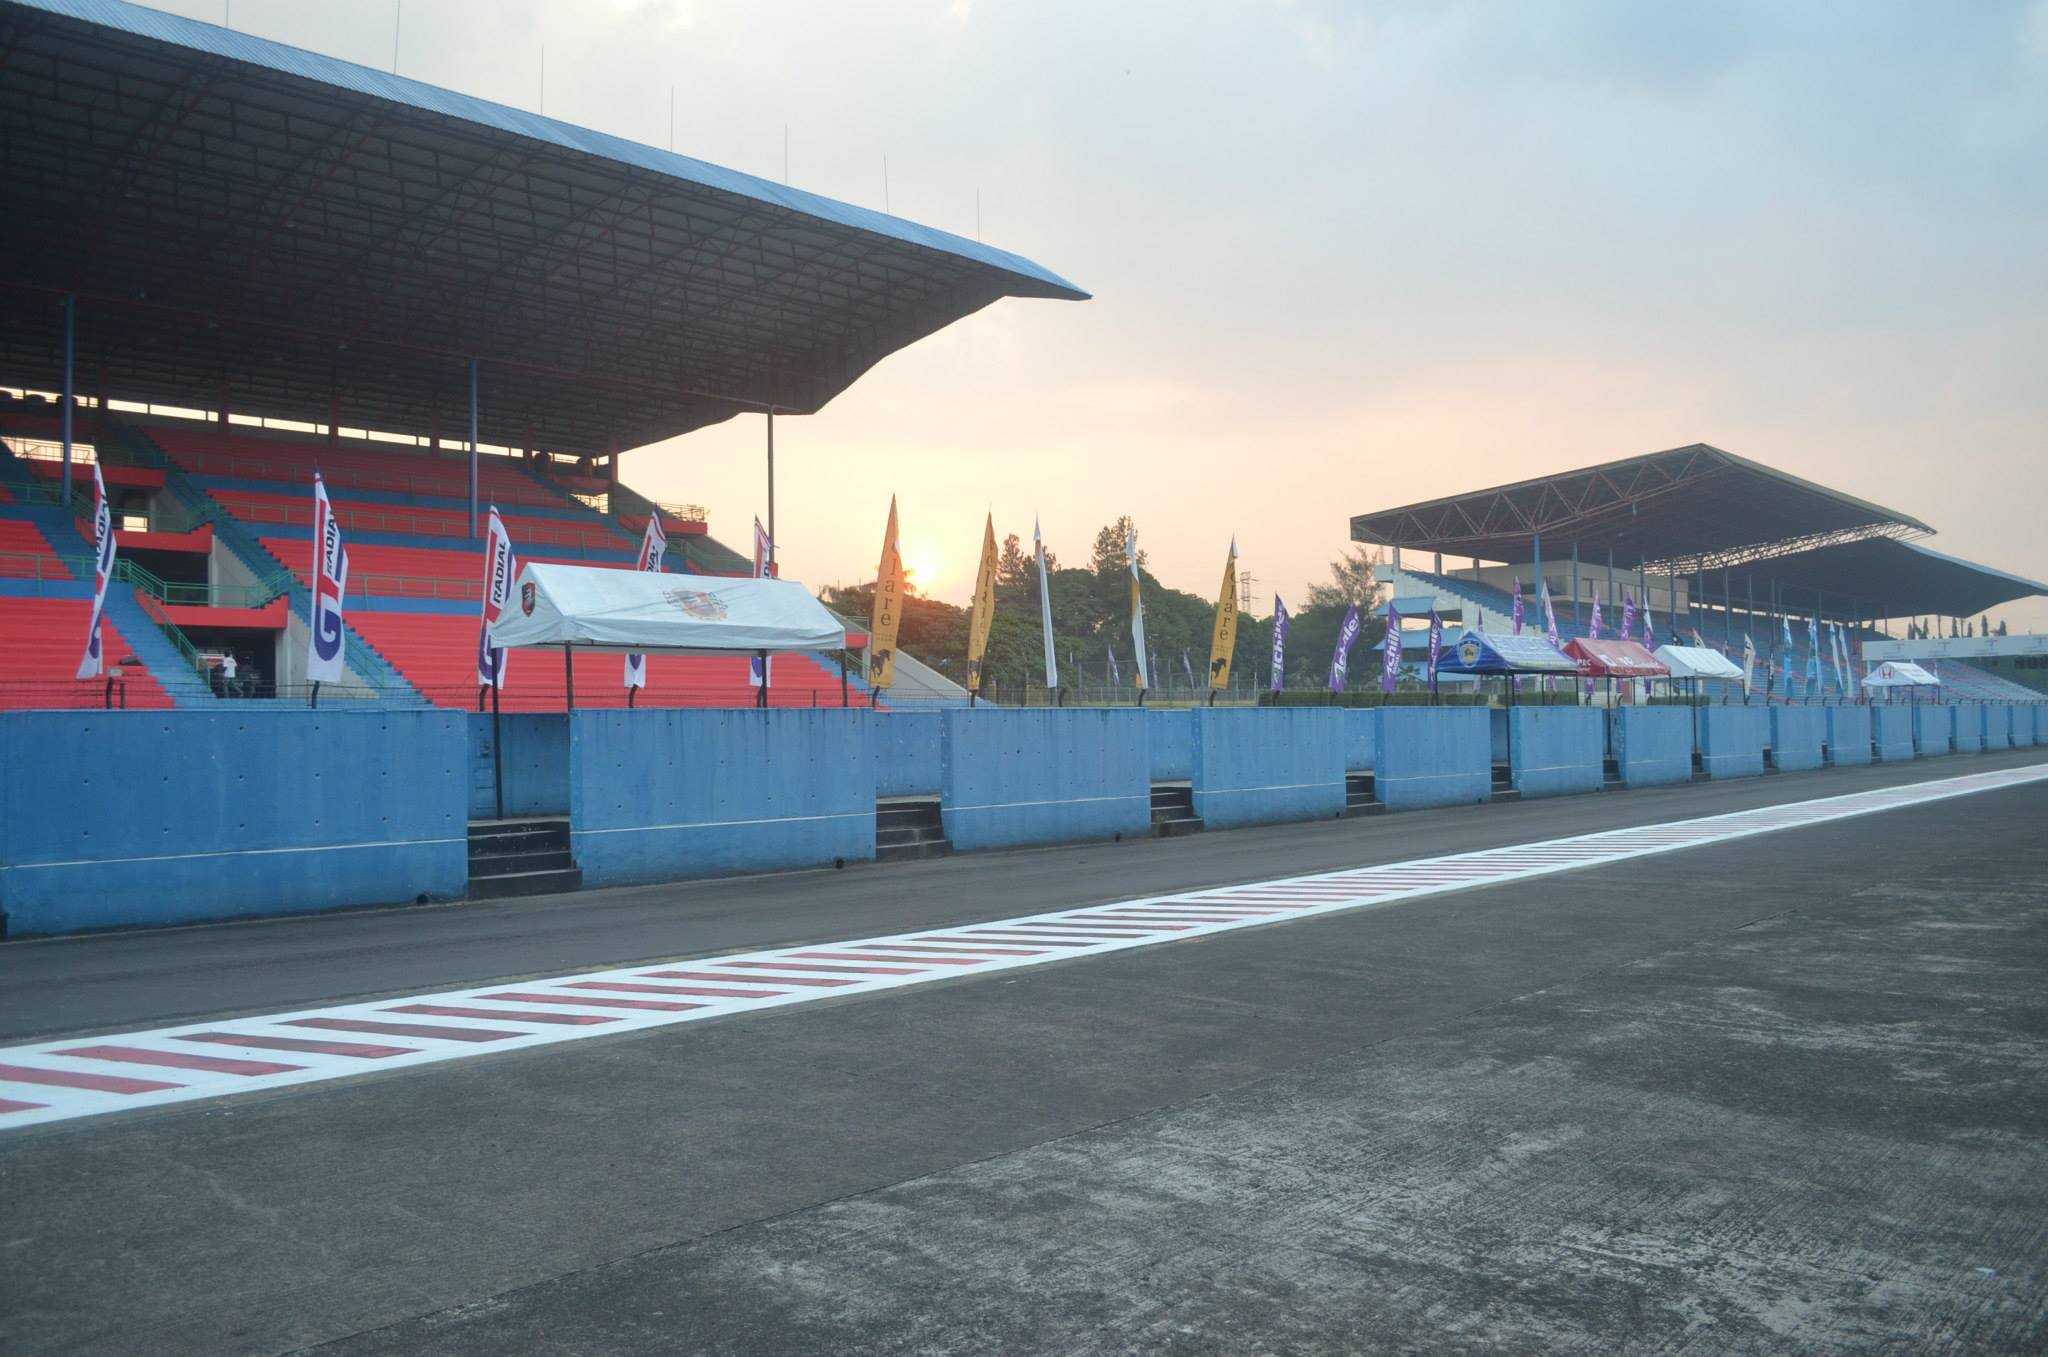 Circuit Sentul : Sentul arrc marred by incidents mcnews